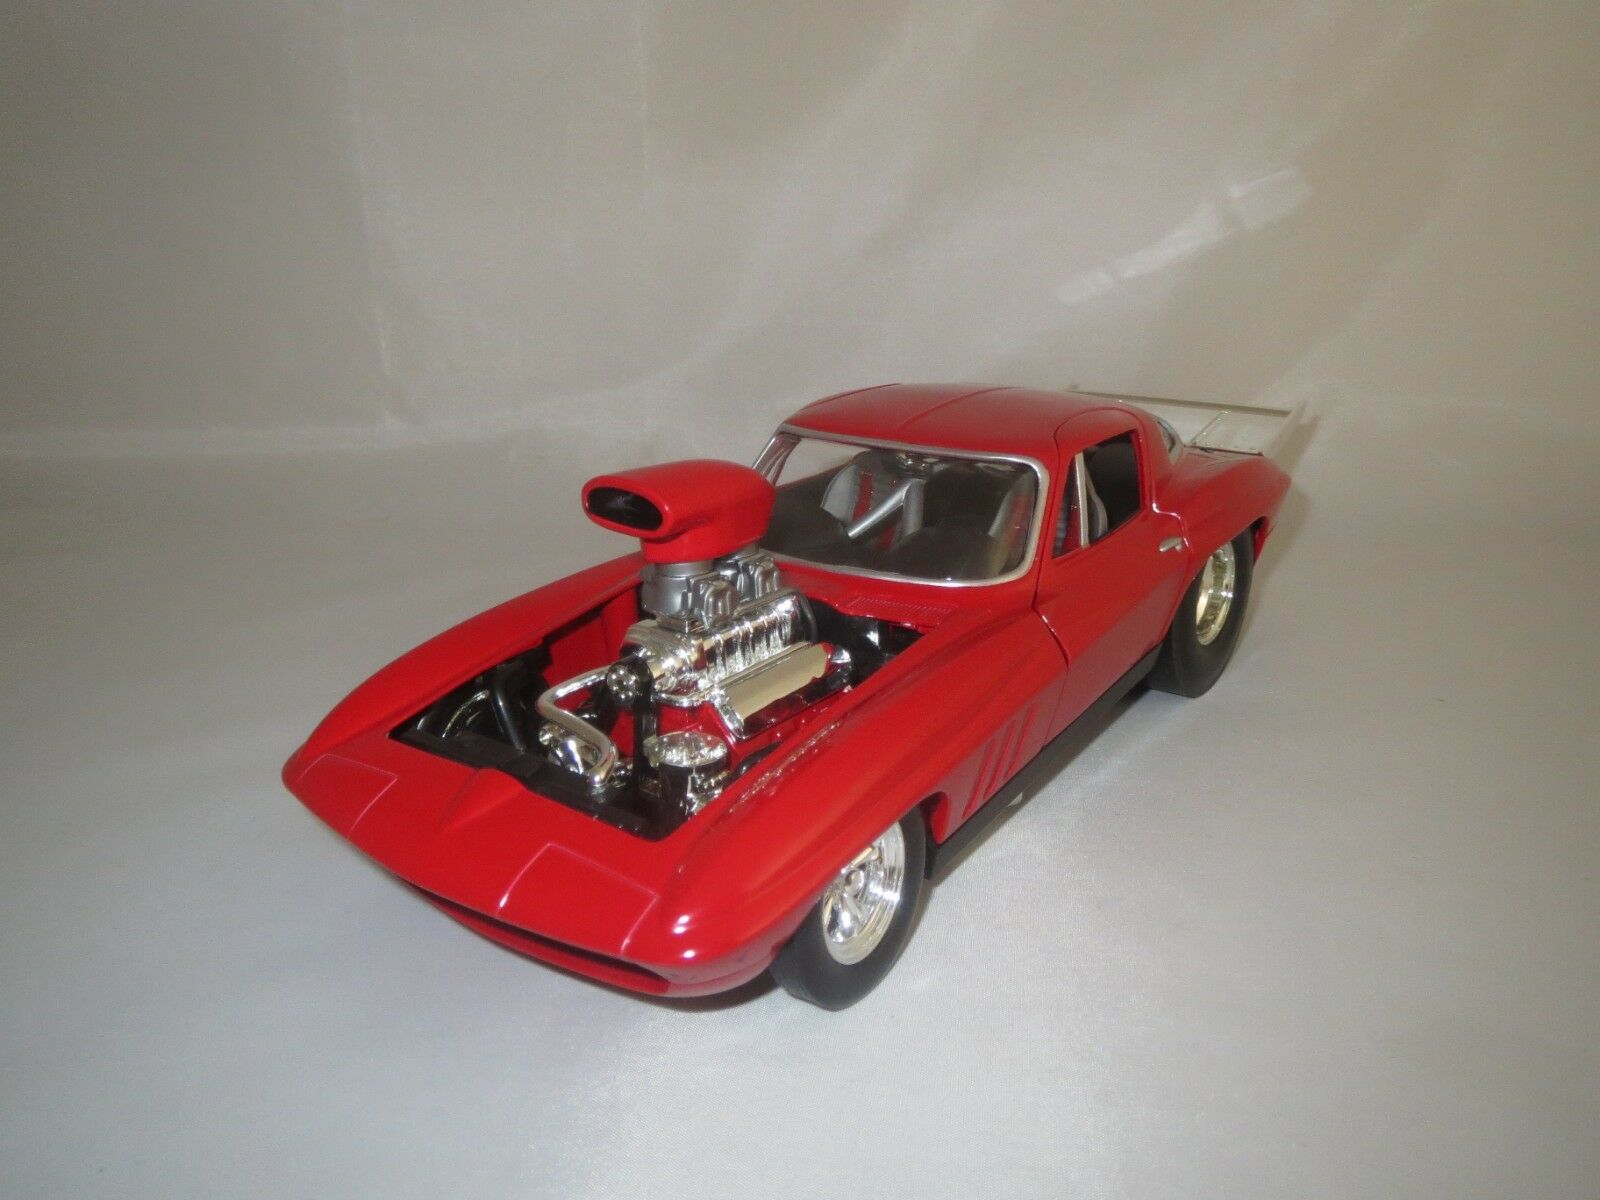 Hot Wheels Mattel Pro Street Corvette (rojo) 1 18 sin embalaje